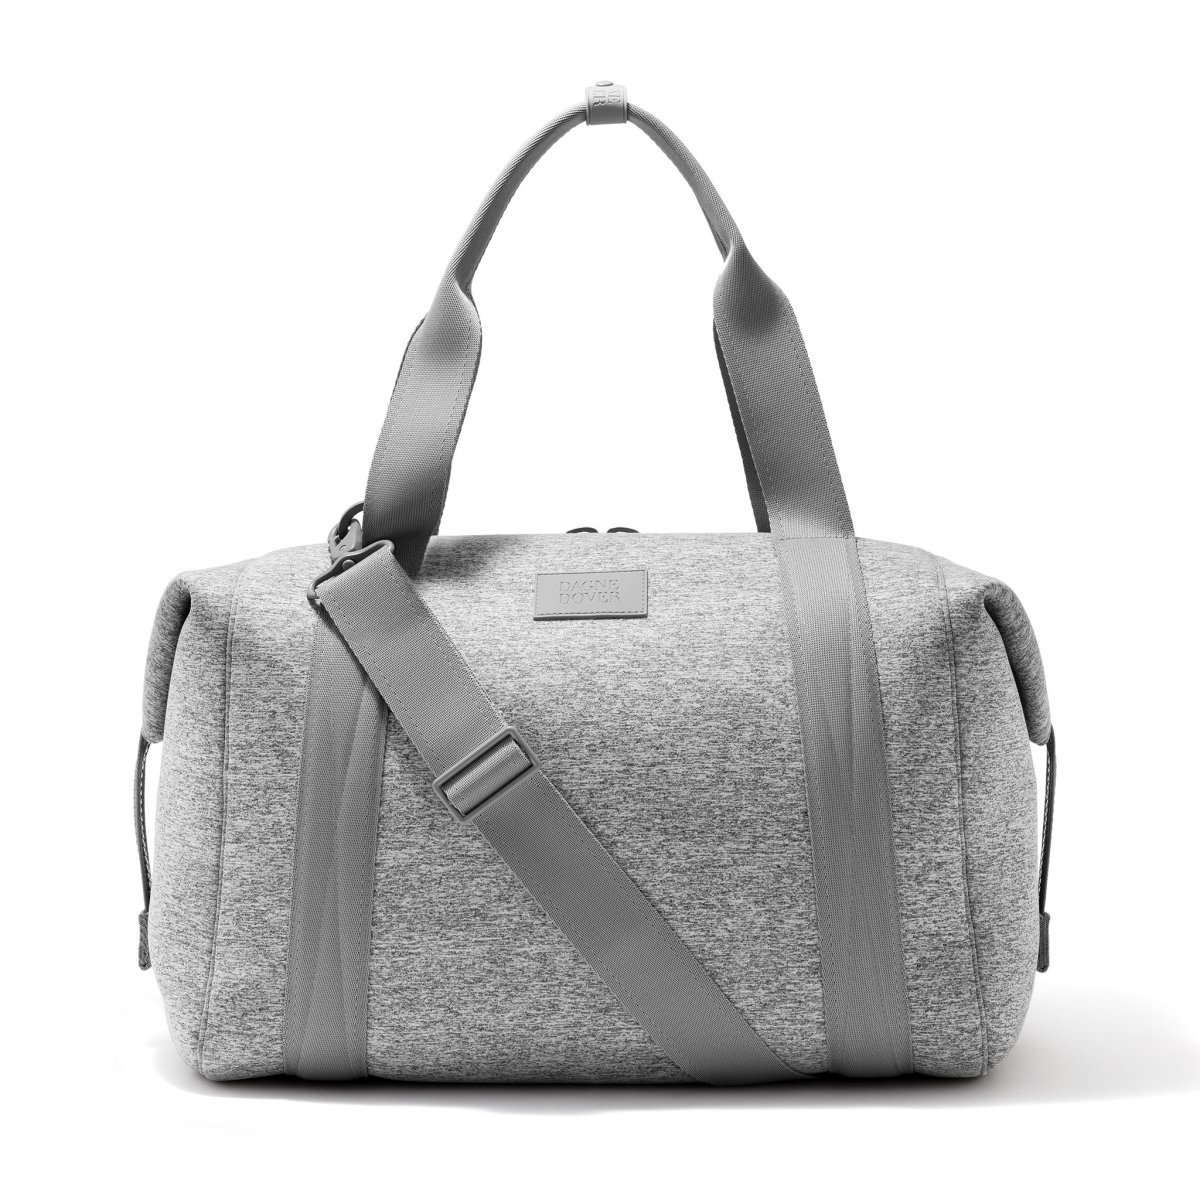 Dagne Dover Landon Large Carryall, $185, available here.